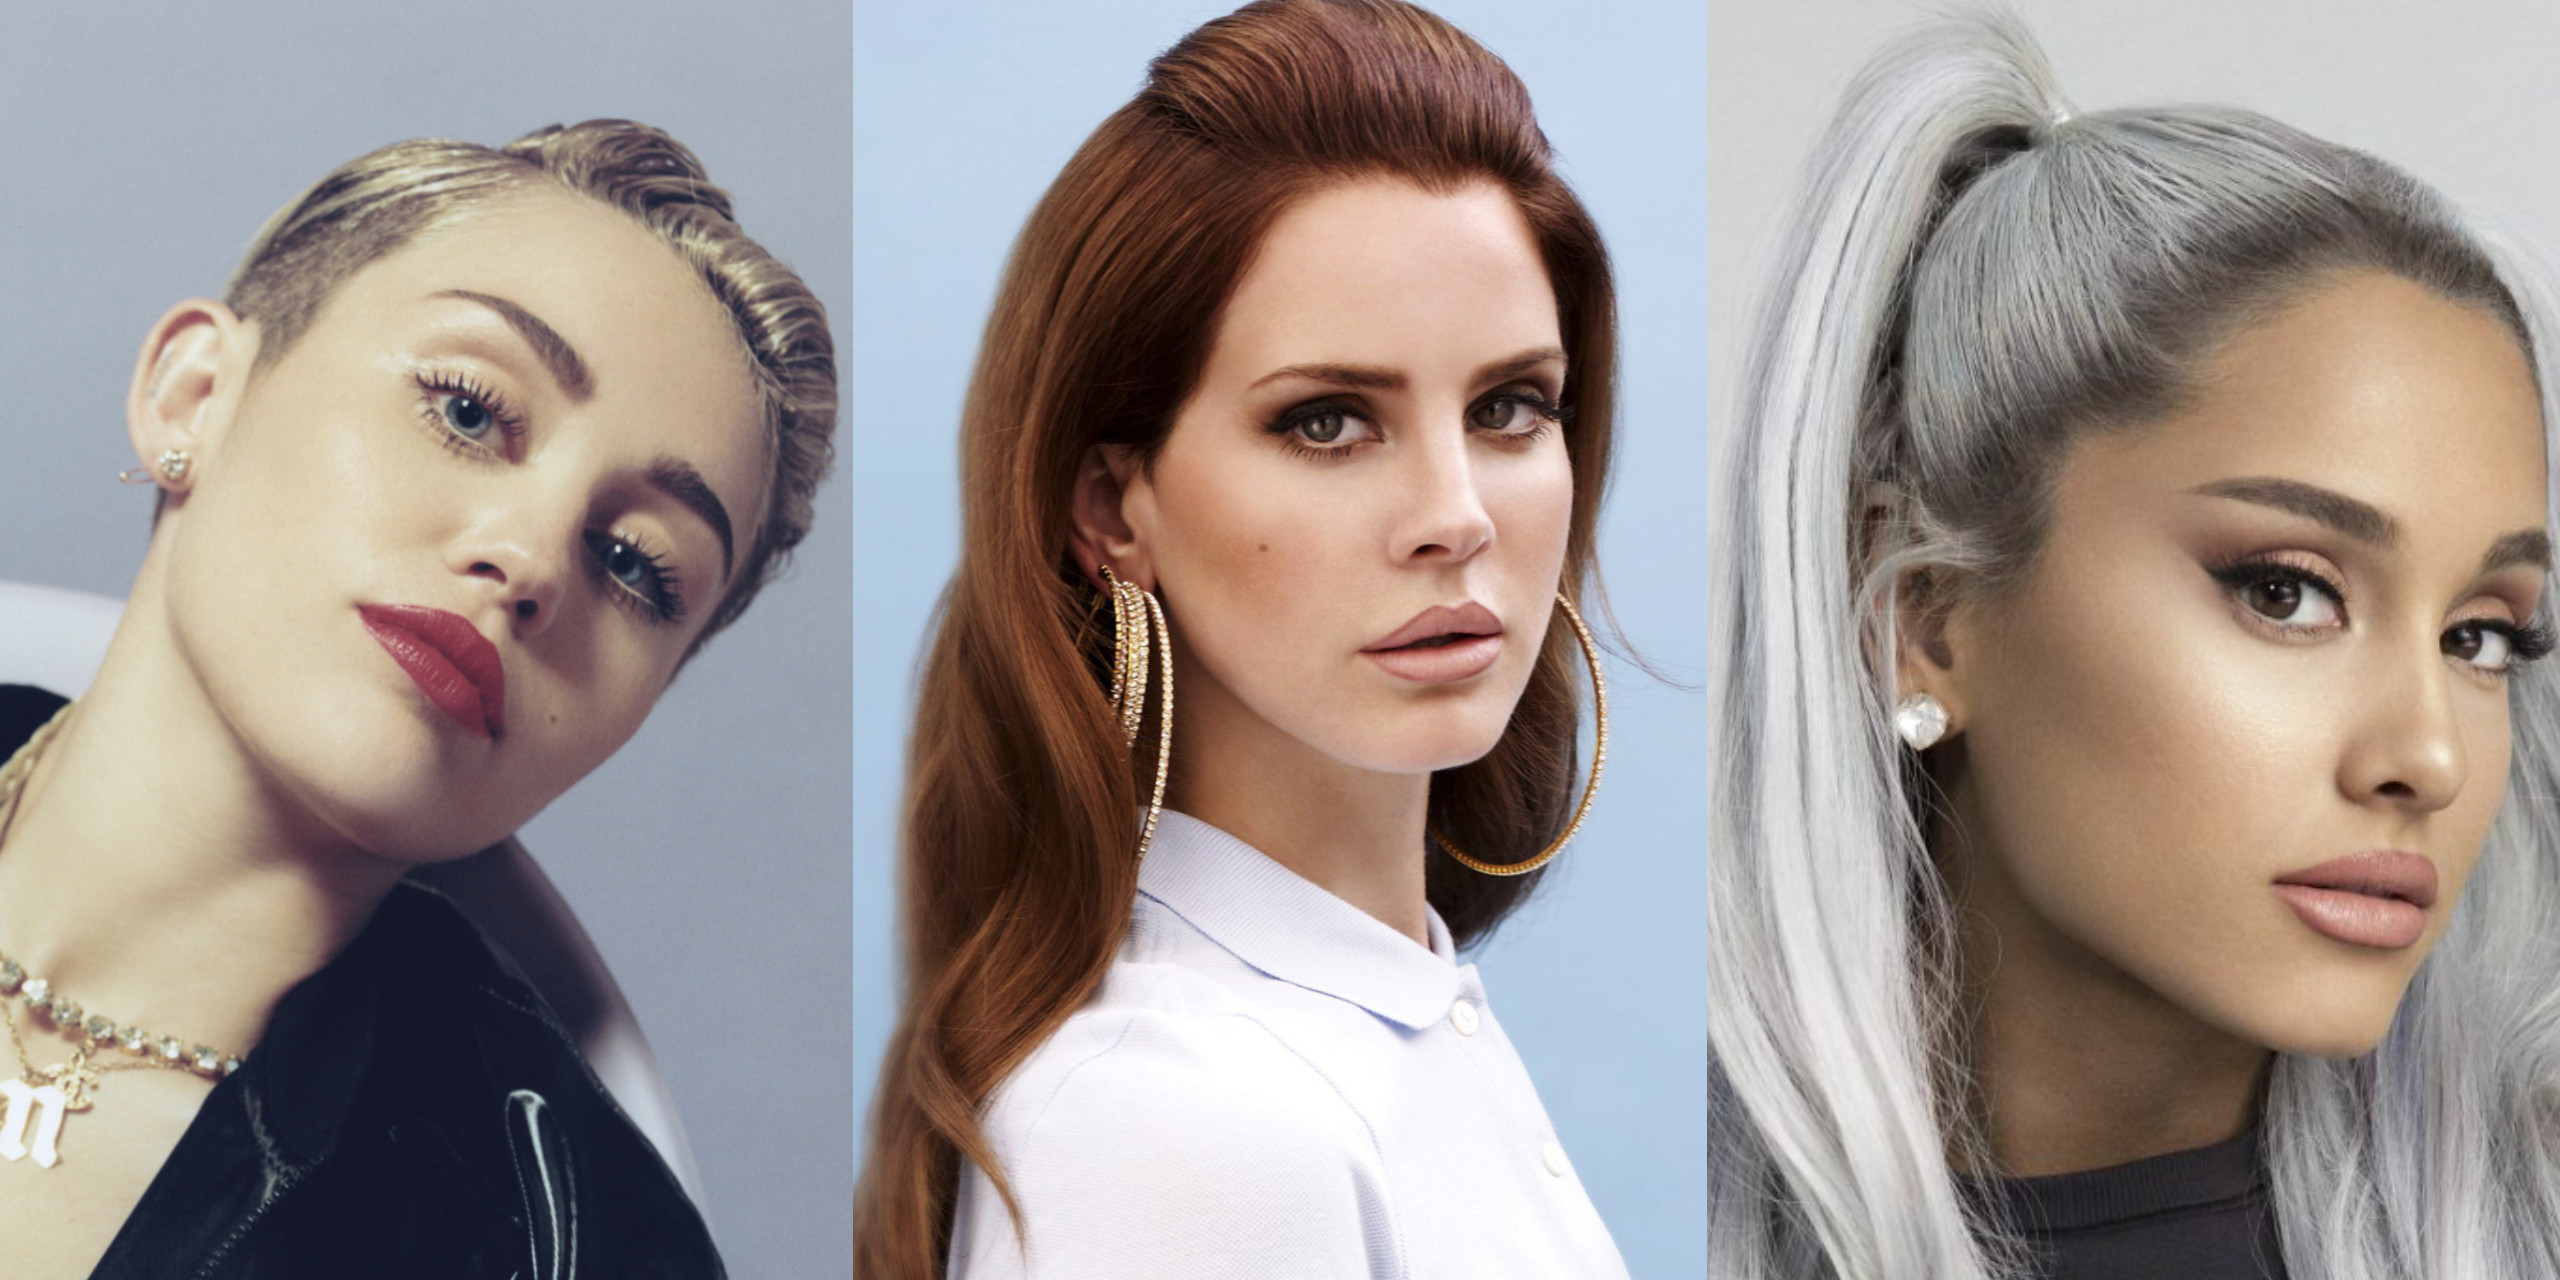 Miley Cyrus teases collaboration with Ariana Grande and Lana Del Rey for Charlie's Angels movie